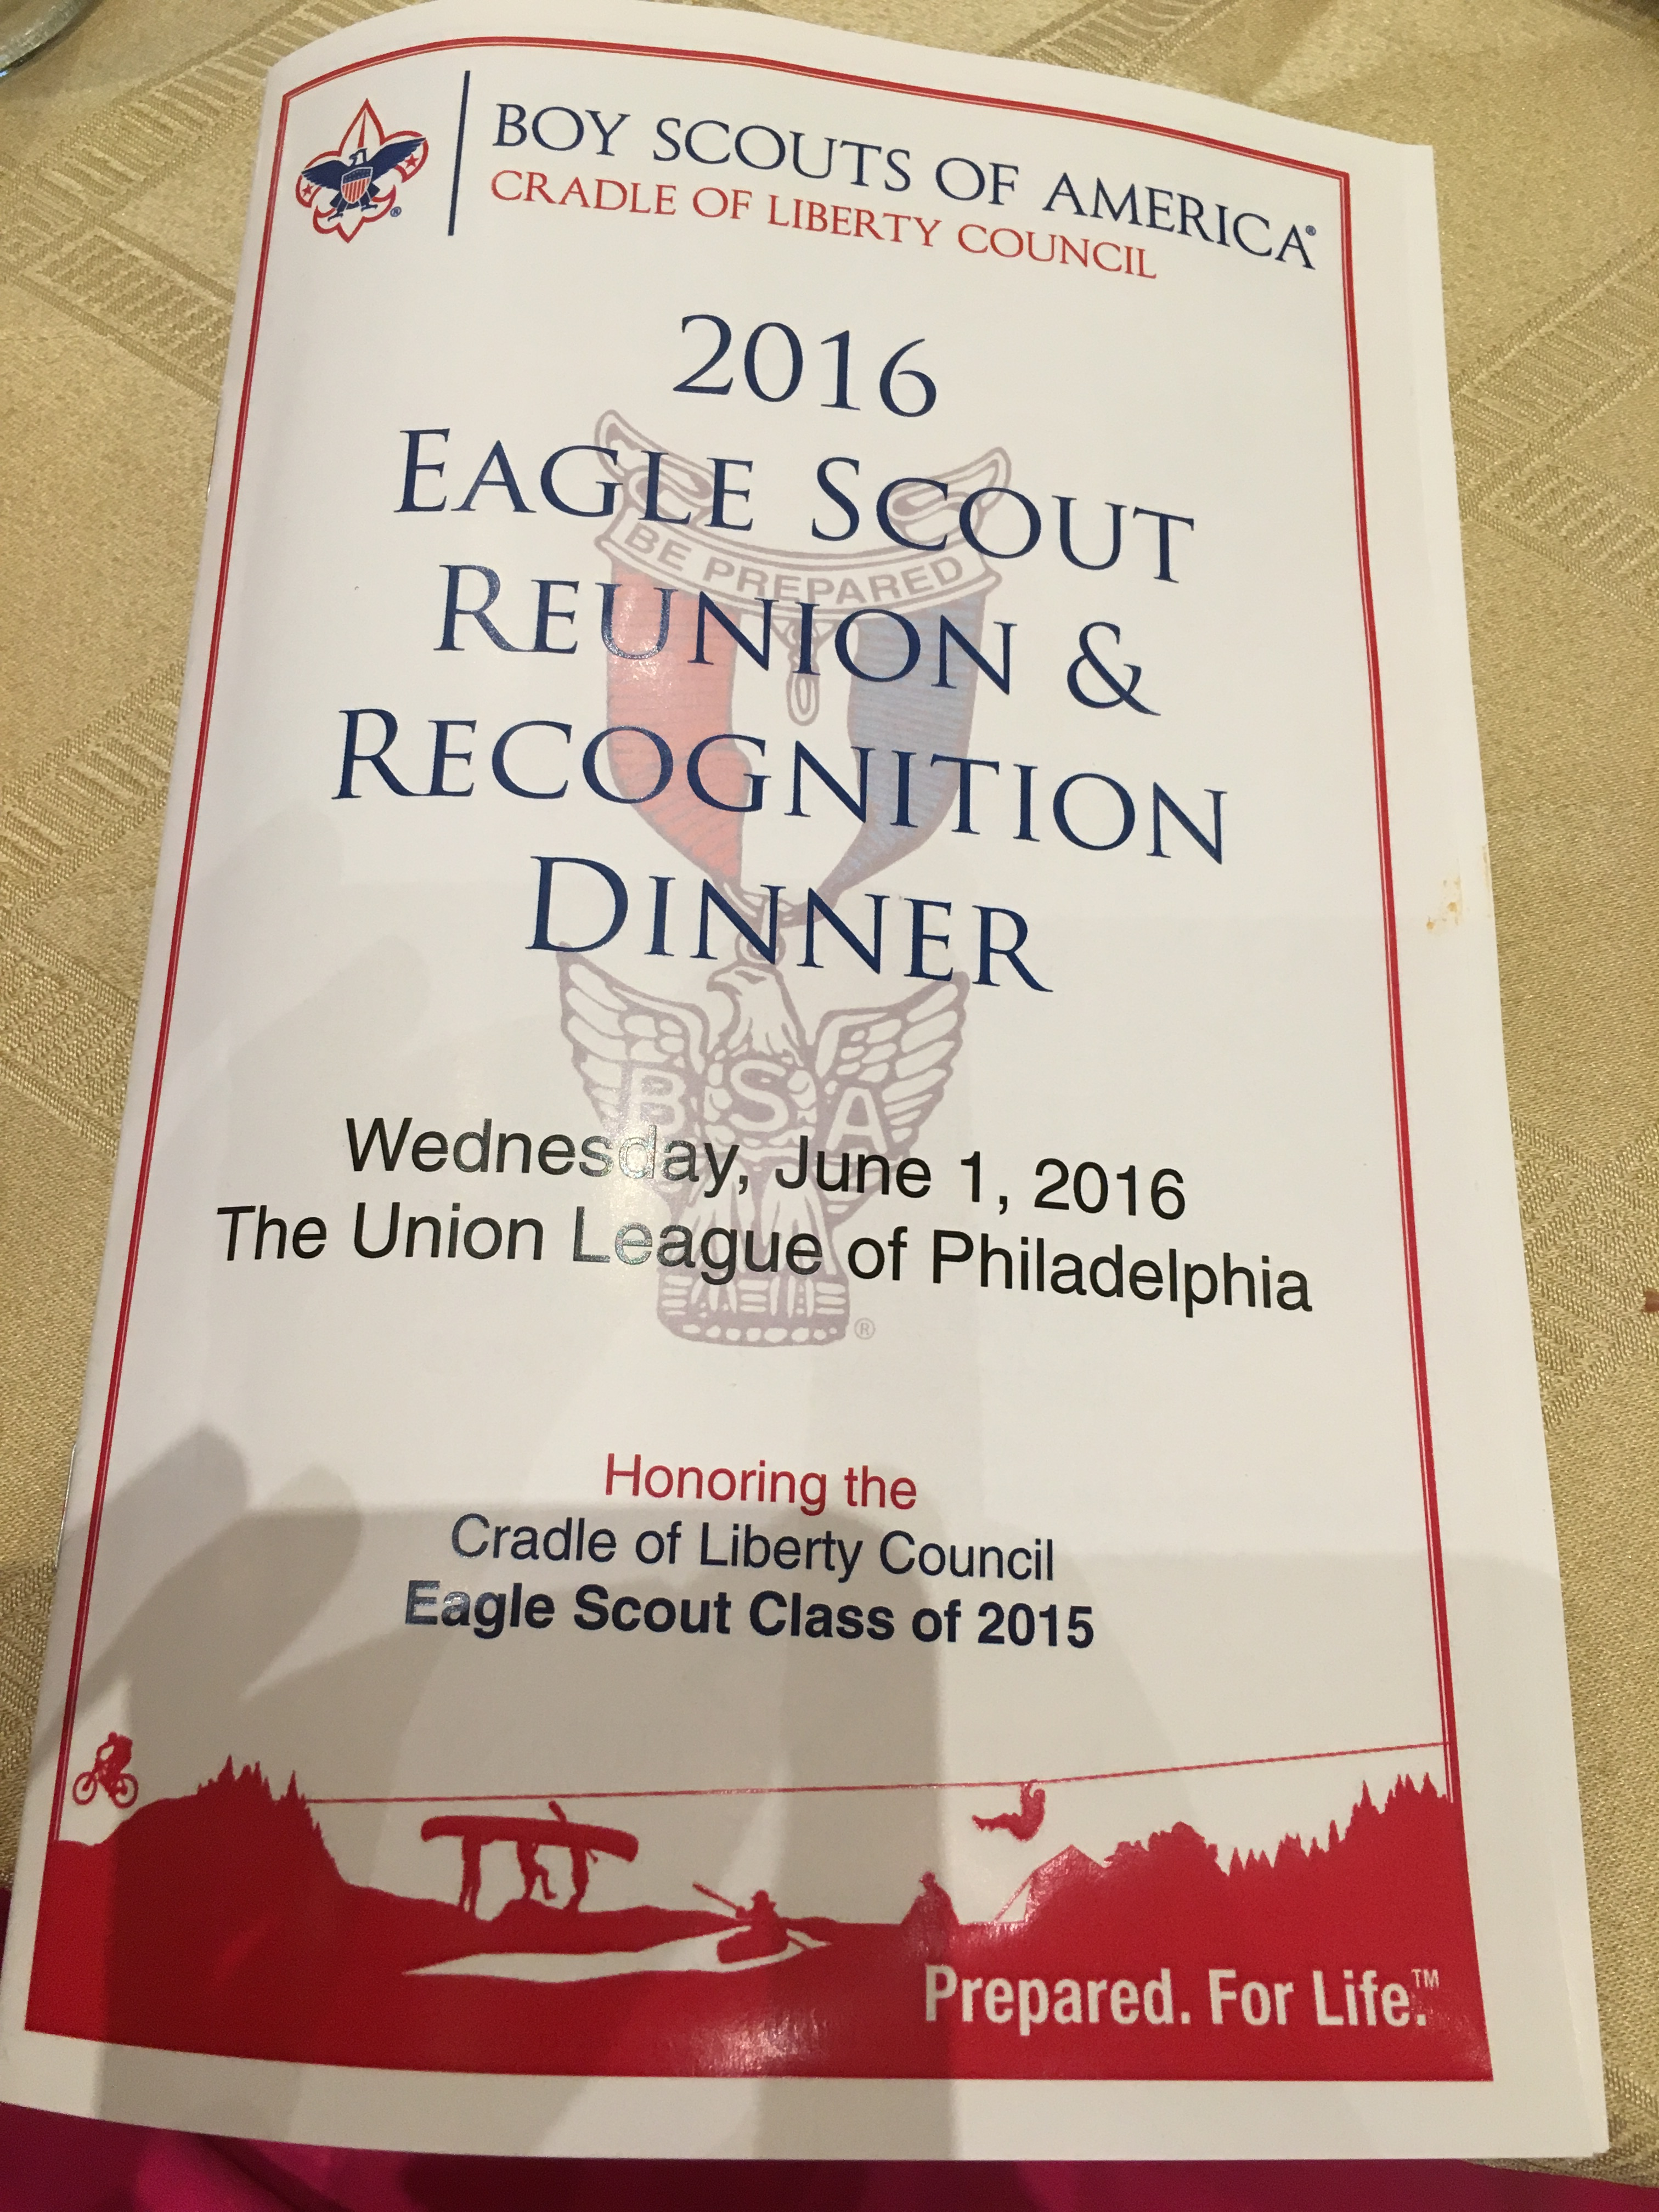 Congratulations Shawn Orenstein, Inducted into the Eagle